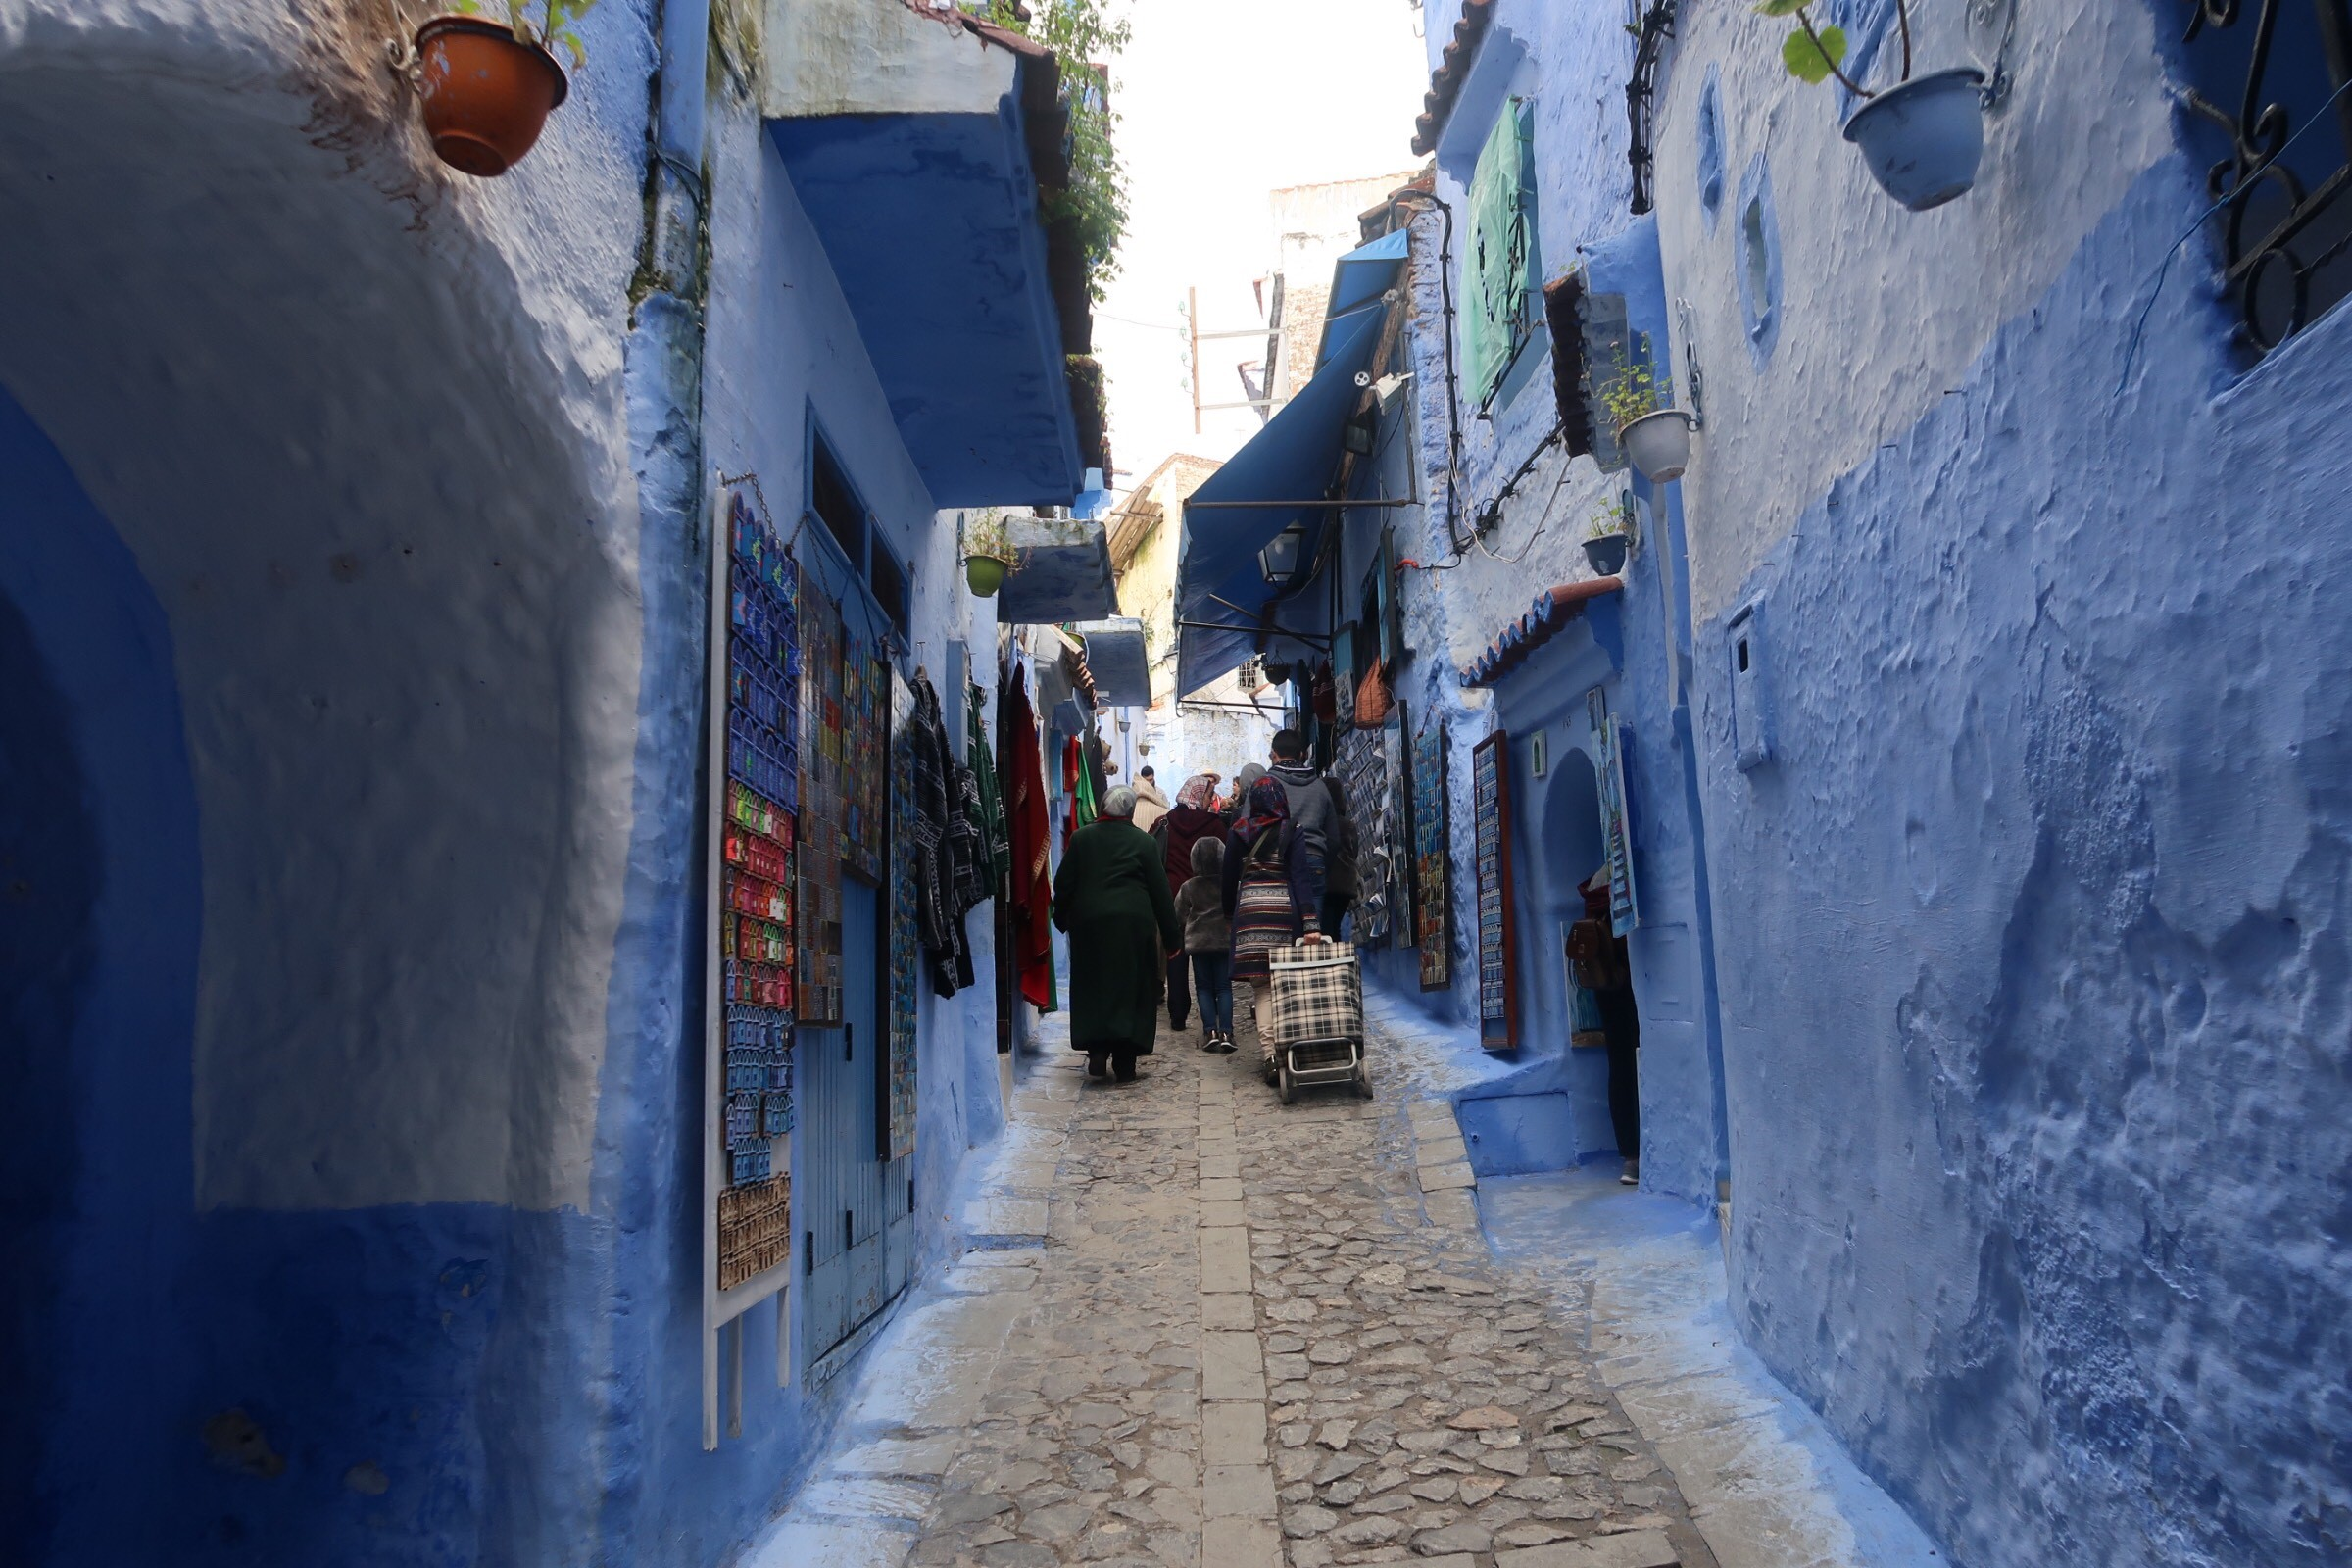 The medina in Chefchaouen. Photo credit: Rehman, 2018